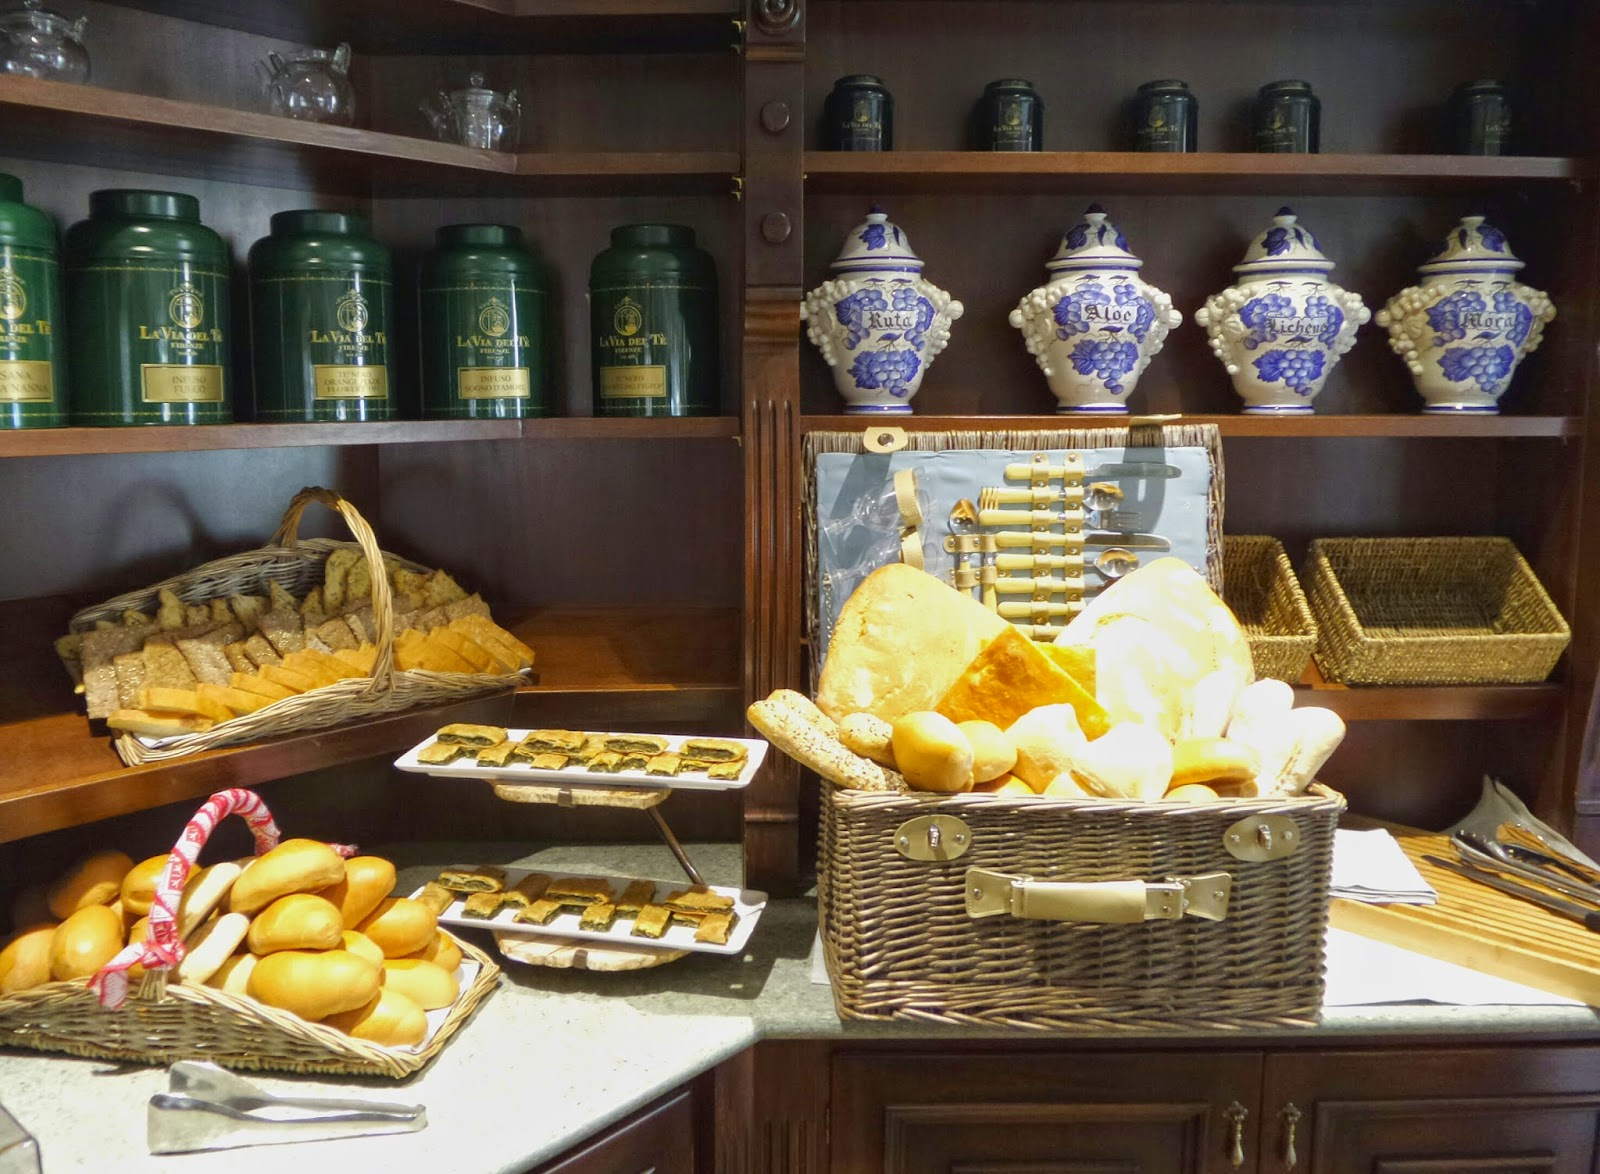 Sunday Brunch & Spa - Hotel Ville sull'Arno - Firenze